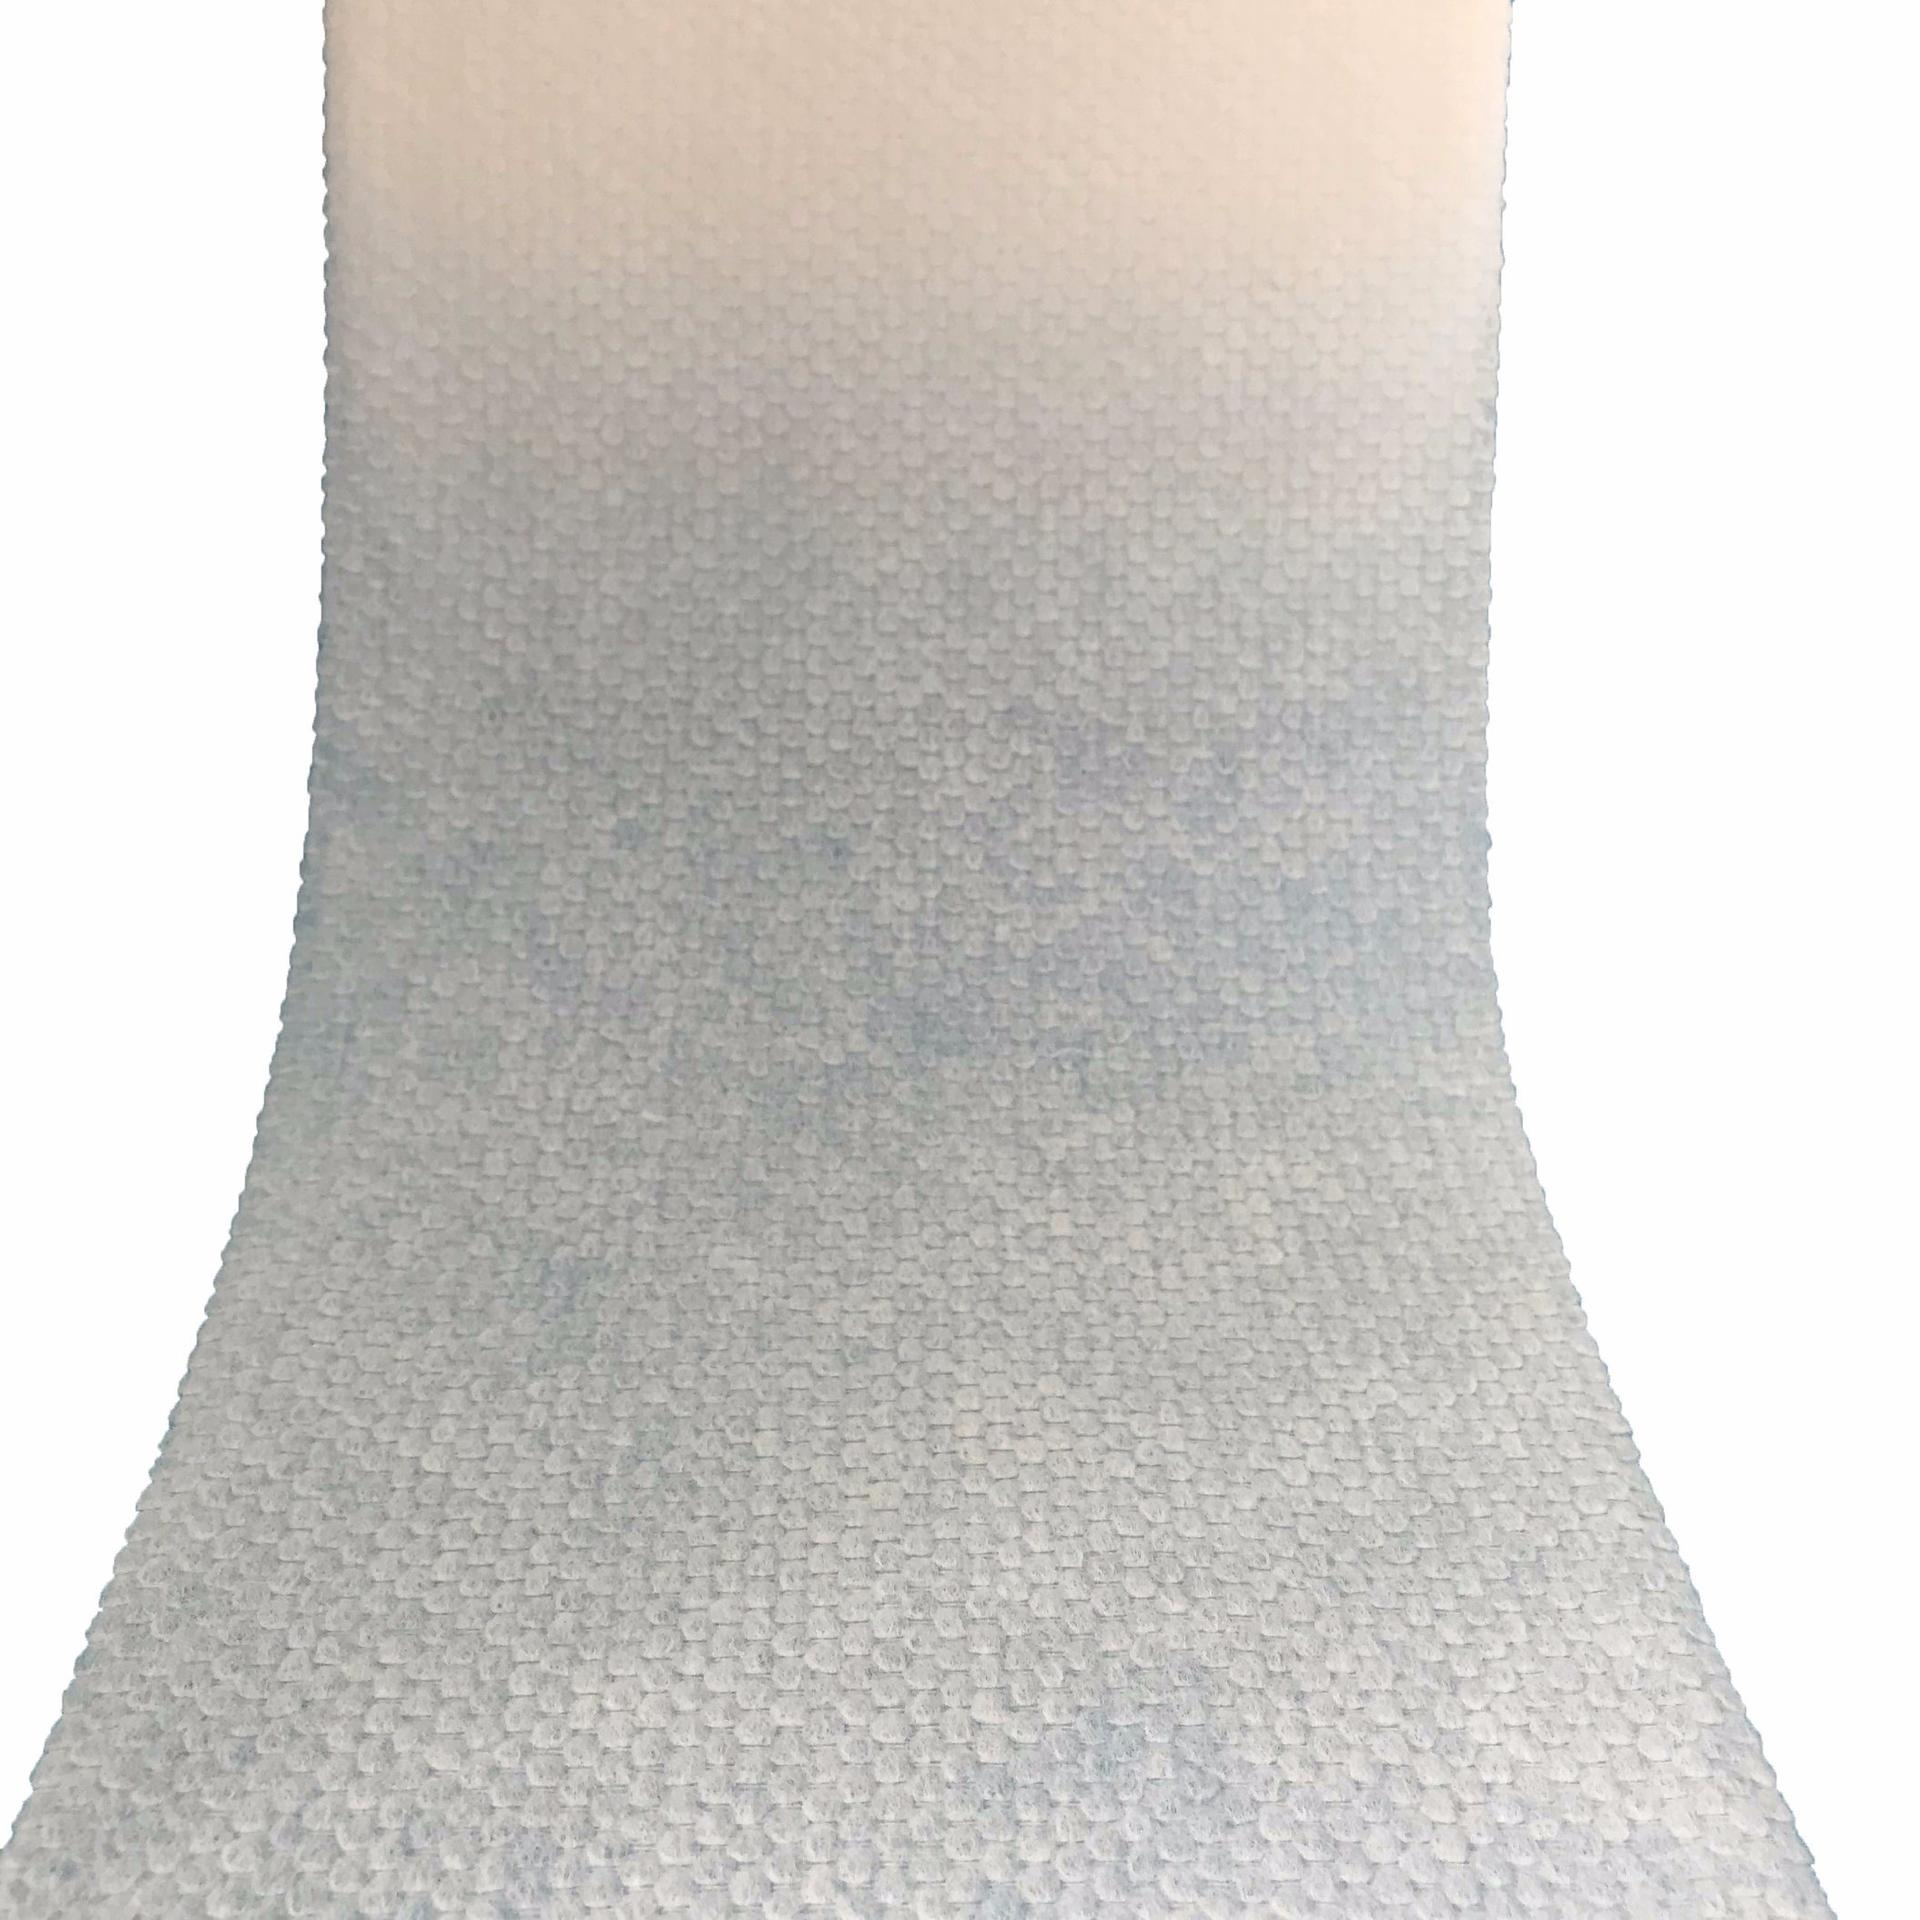 Meltblown Filter Polypropylene Spunbond Meltblown Nonwoven Fabric